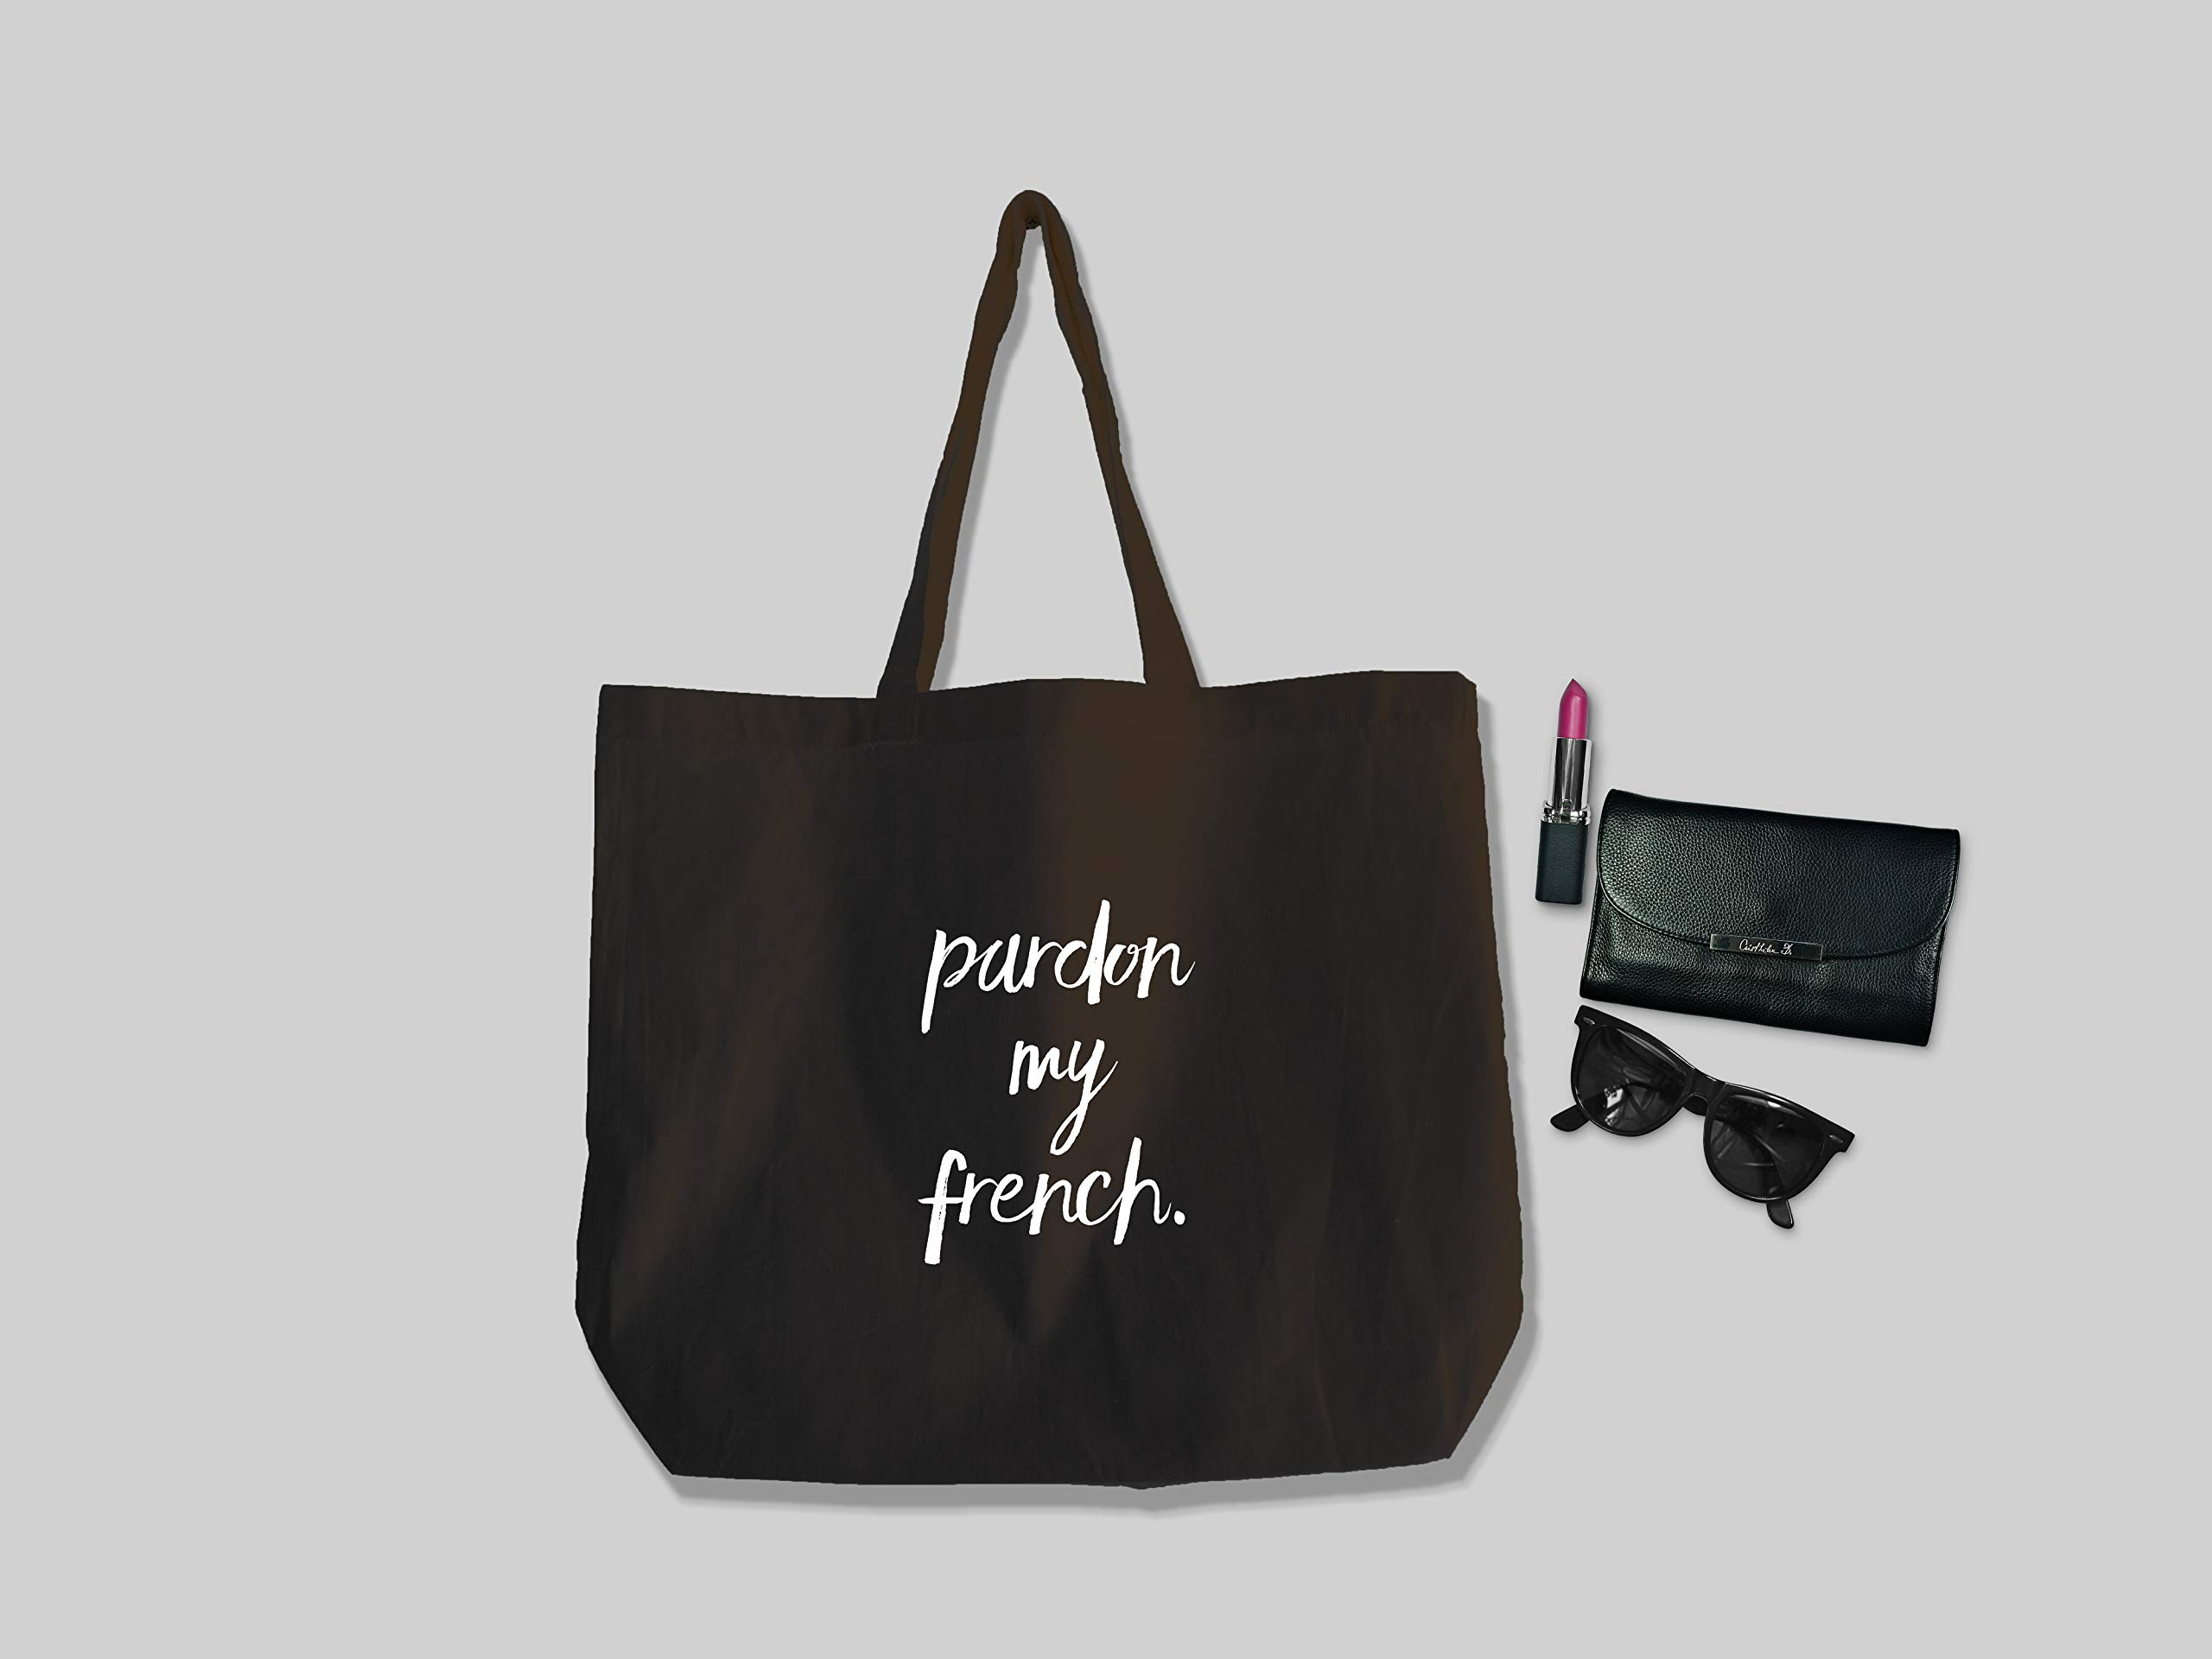 Pardon My French Cotton Tote Bag - handmade-bags